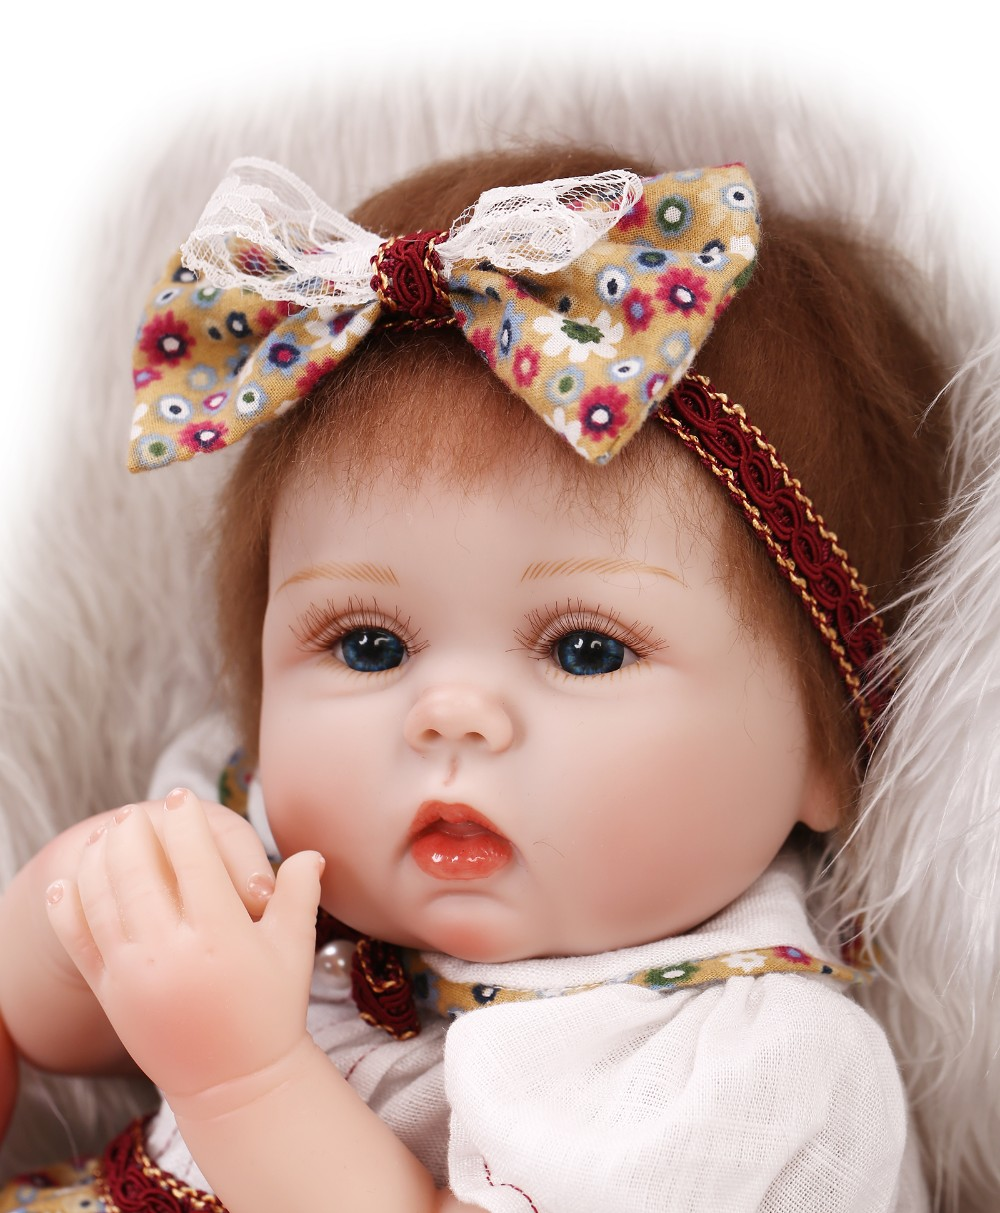 40cm bebe doll reborn toys cloth body silicone reborn baby dolls best children gift play house for Best reborn baby dolls